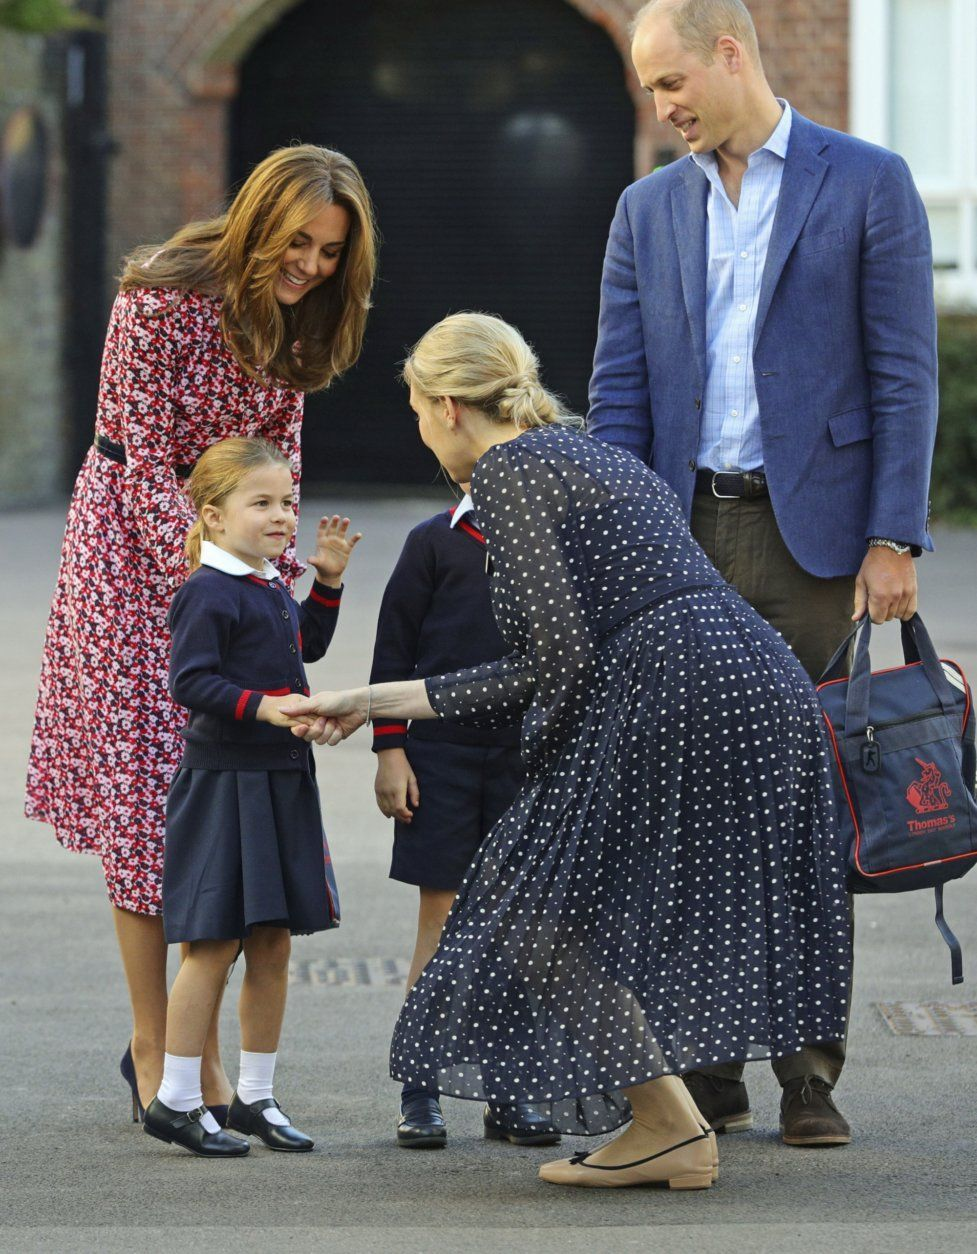 Helen Haslem, head of the lower school greets Britain's Princess Charlotte as she arrives for her first day of school at Thomas's Battersea in London, with her brother Prince George and their parents Prince William and Kate, Duchess of Cambridge, Thursday Sept. 5, 2019. (Aaron Chown/Pool via AP)